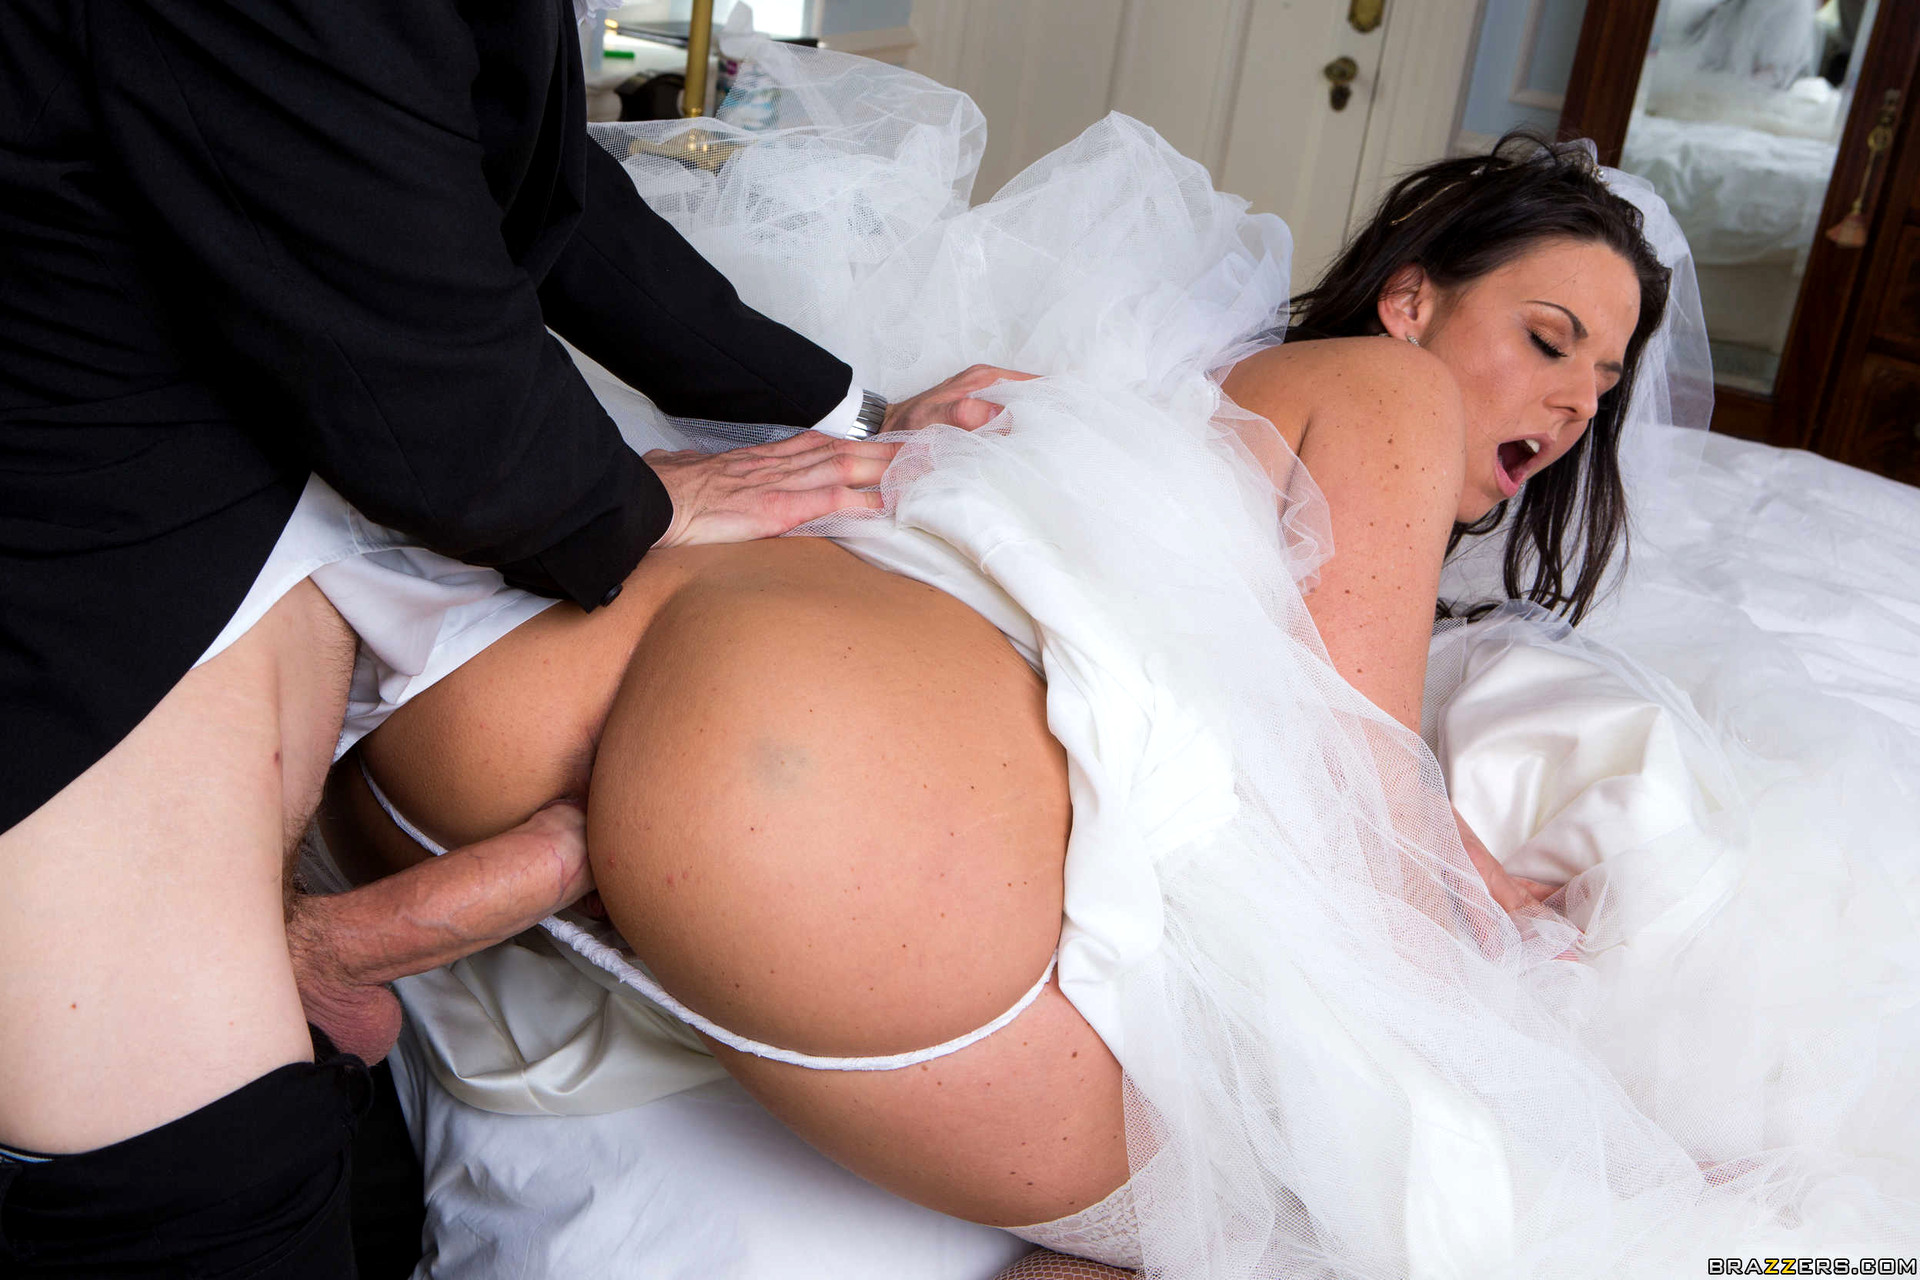 Bride fuck videos, bikini line videos